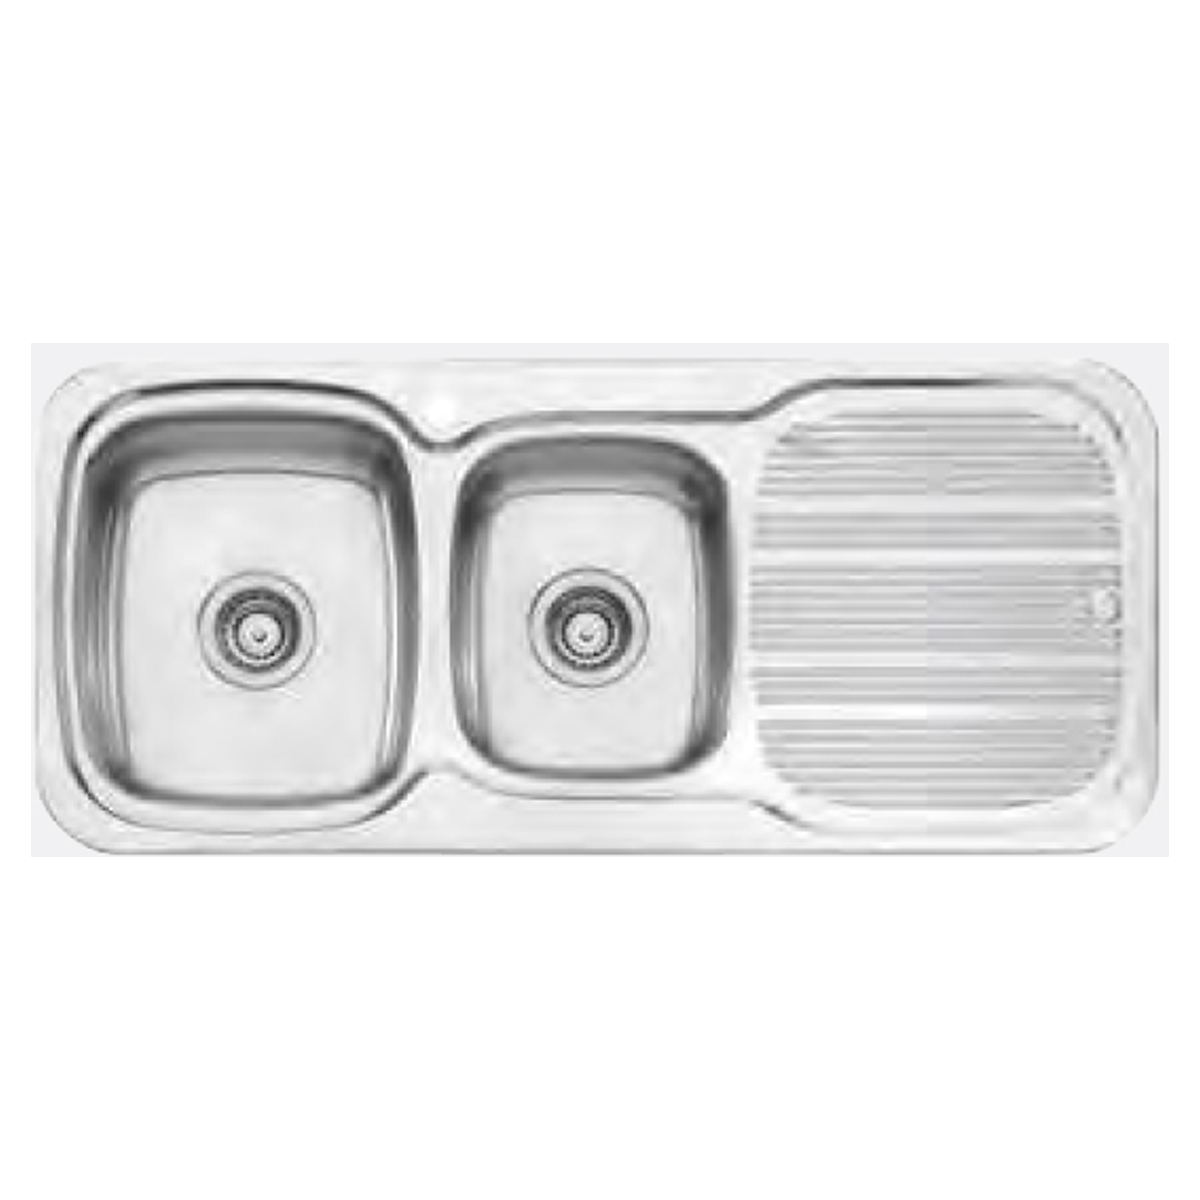 Oliveri PL811 Stainless Steel 1 & 3/4 Bowl Inset Sink with Drainer 61420